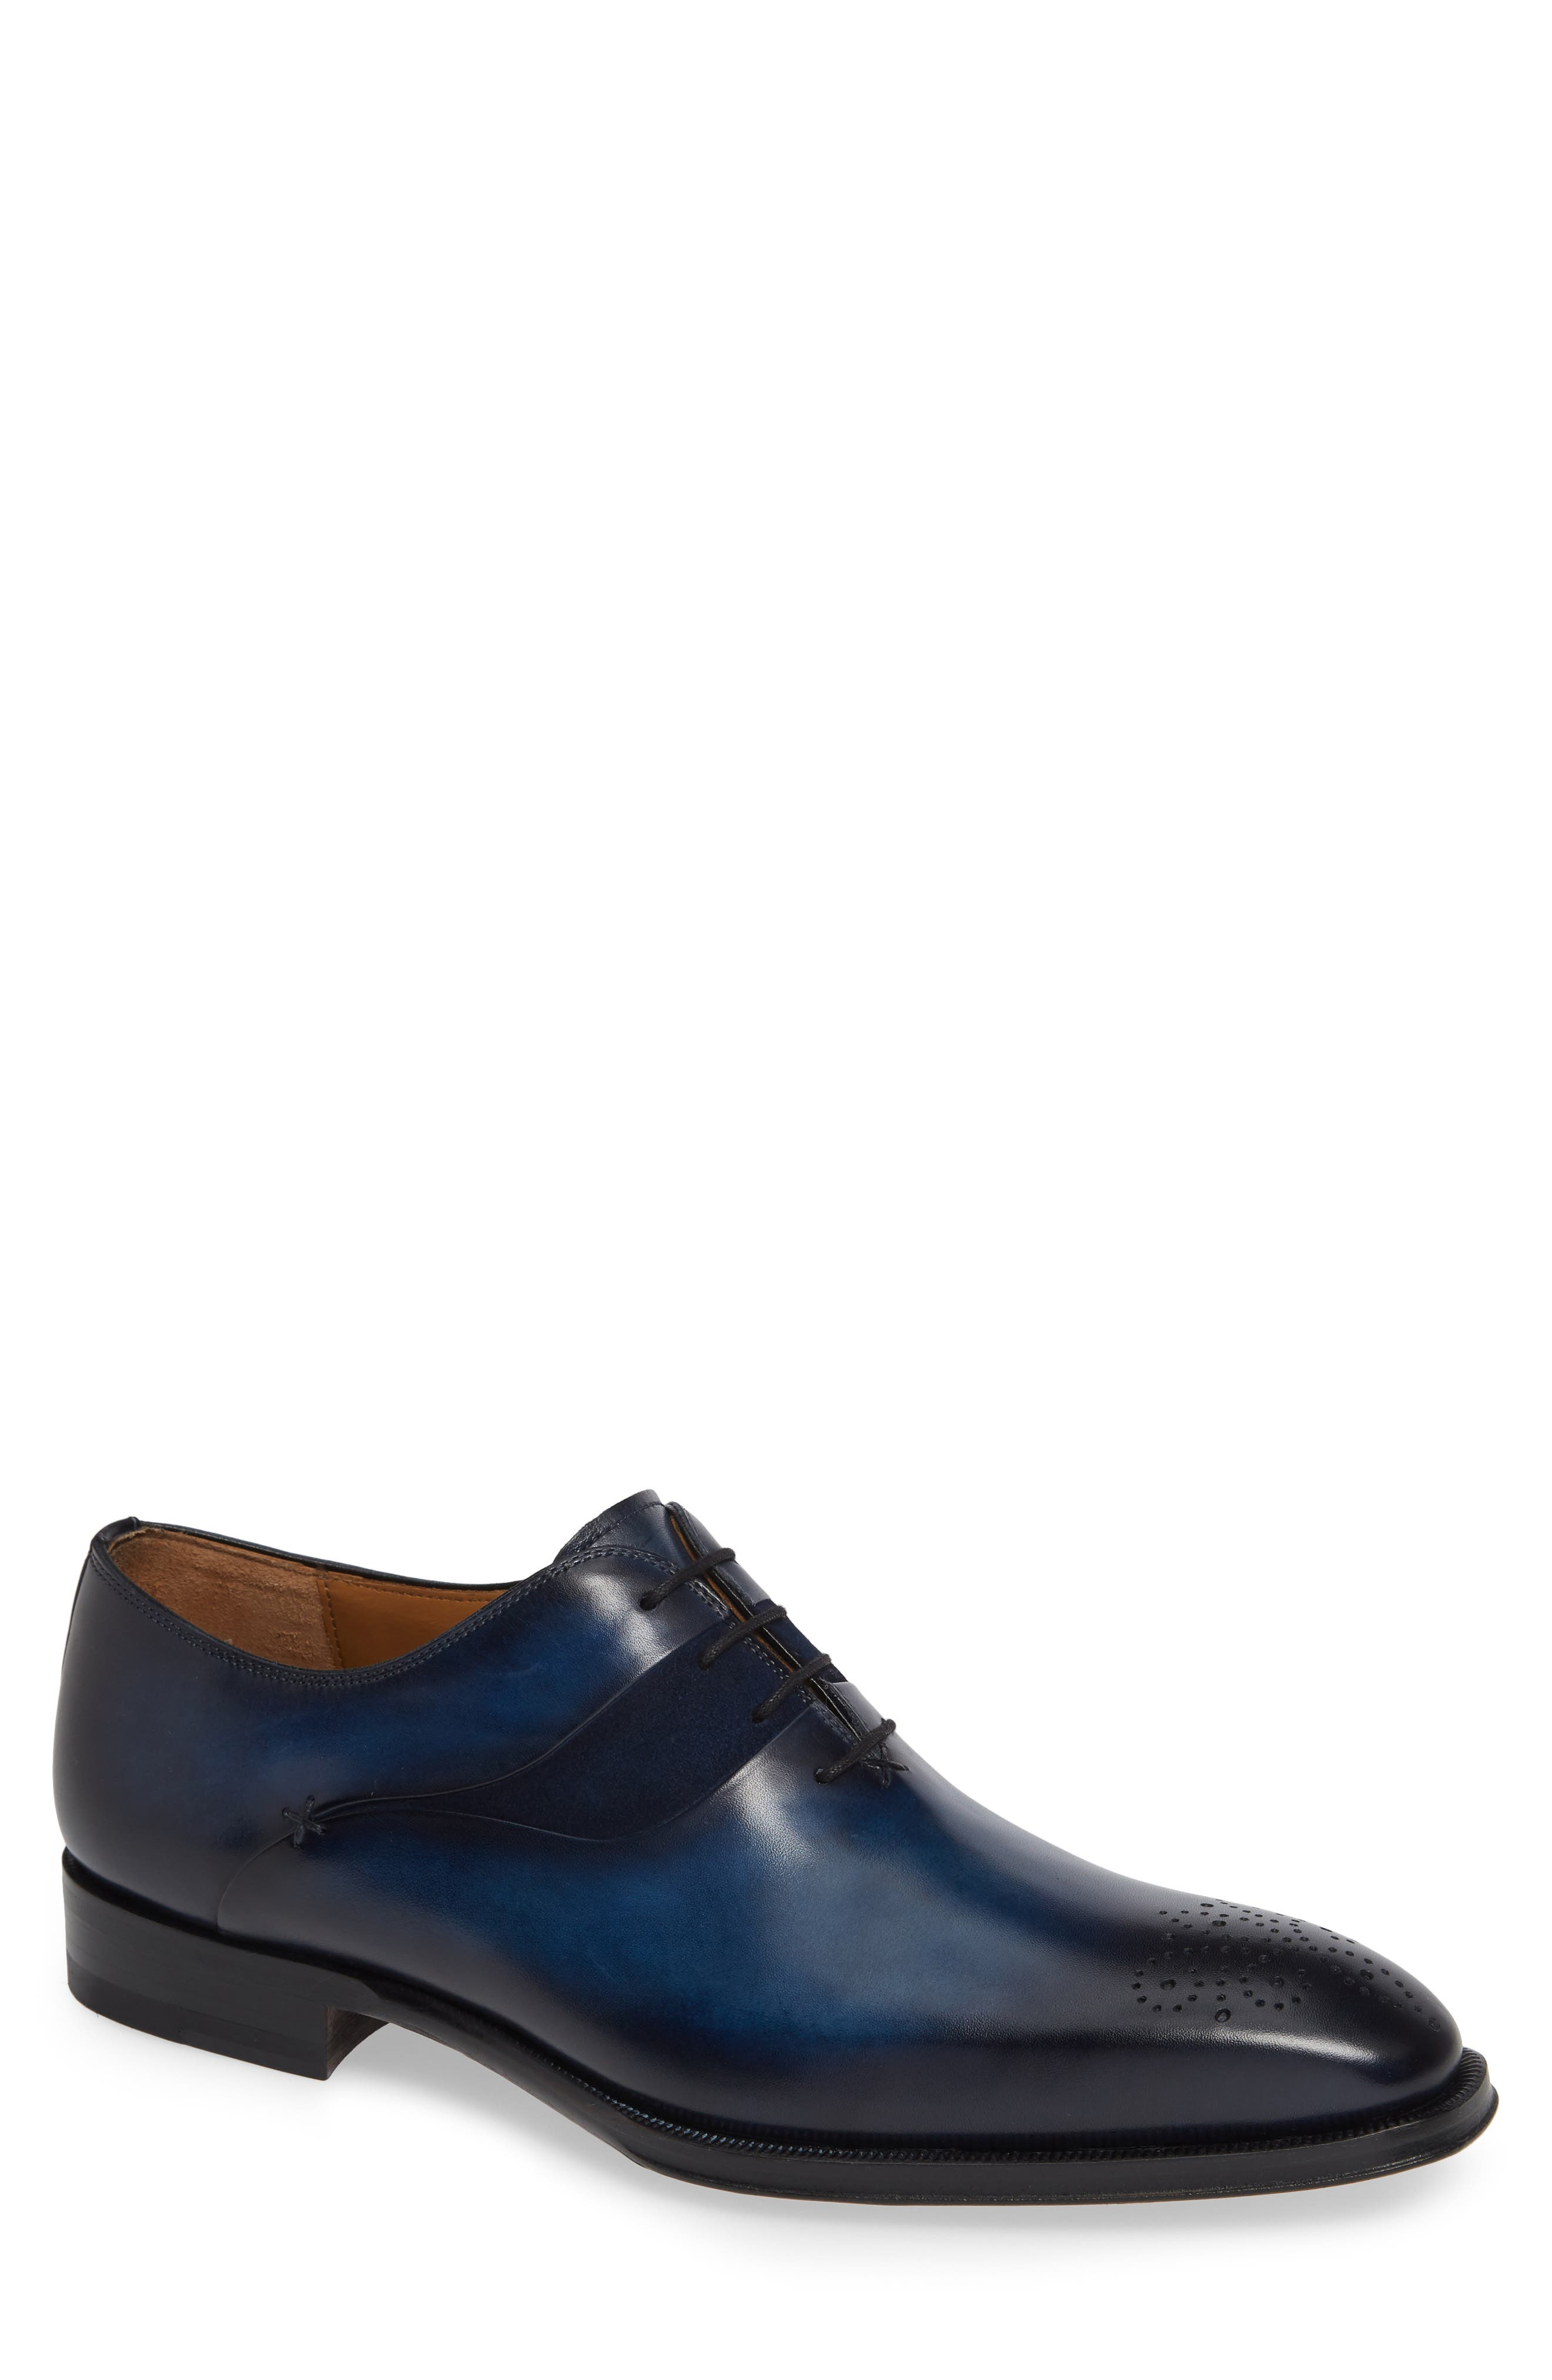 Hector Plain Toe Oxford,                         Main,                         color, NAVY LEATHER